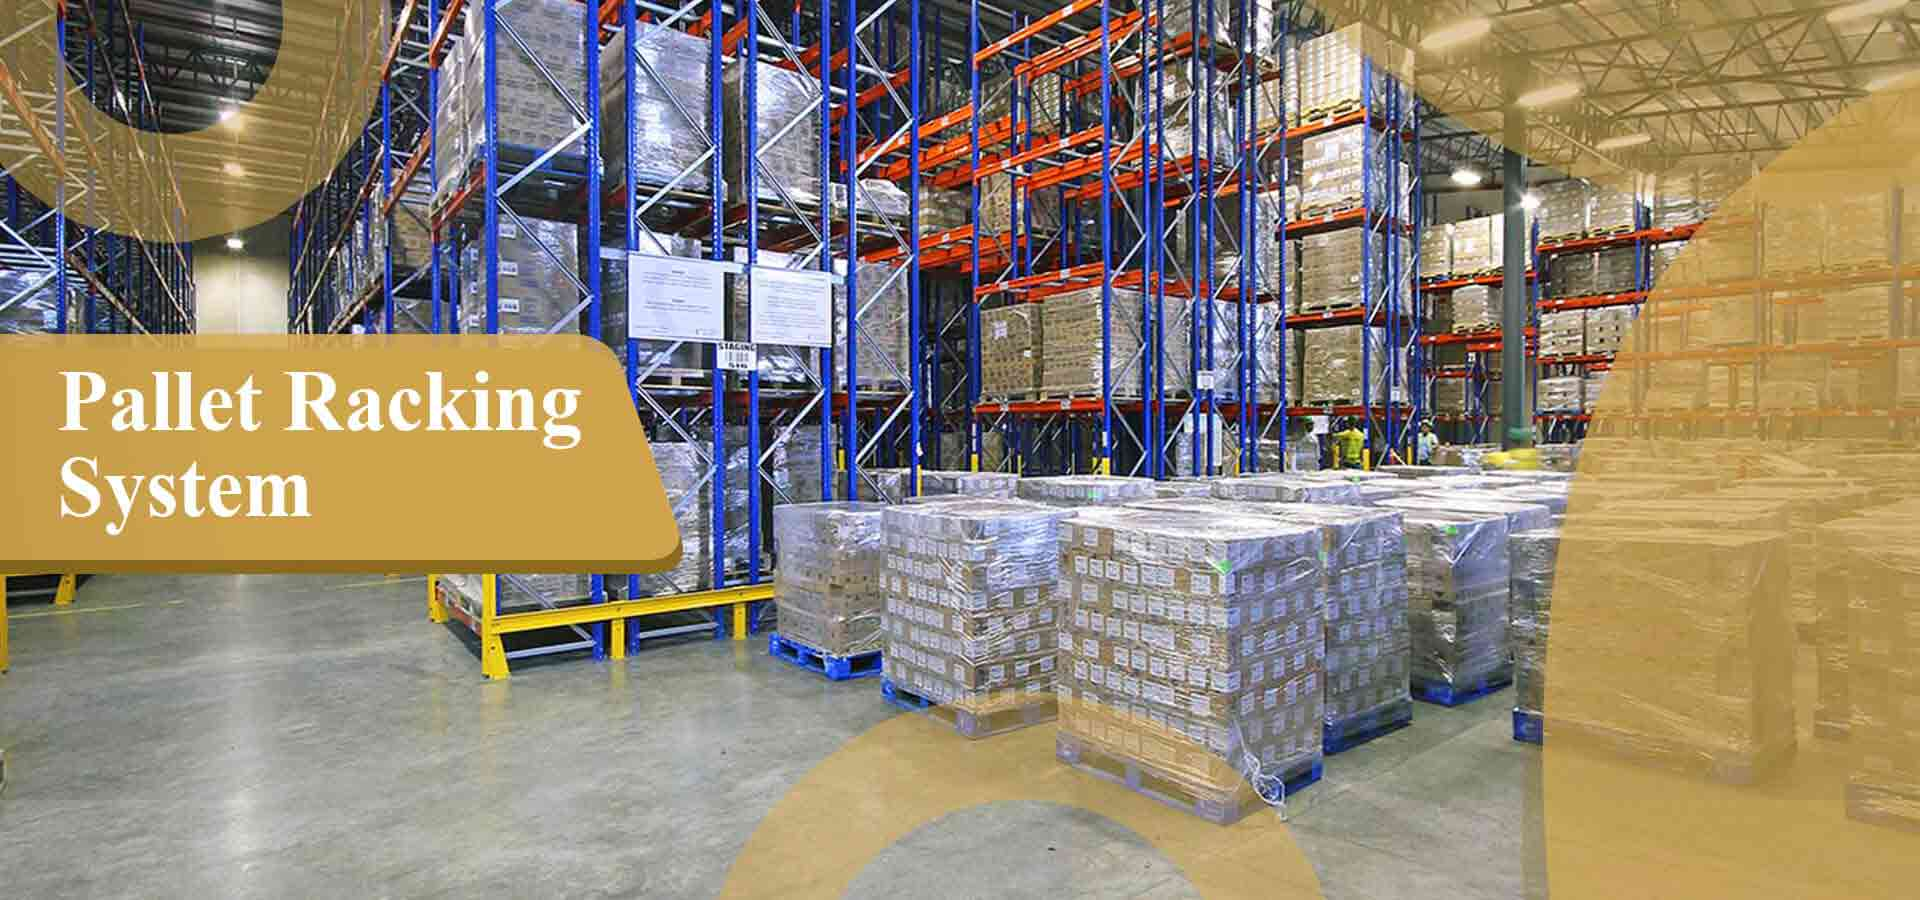 Pallet Racking System In Mangalam